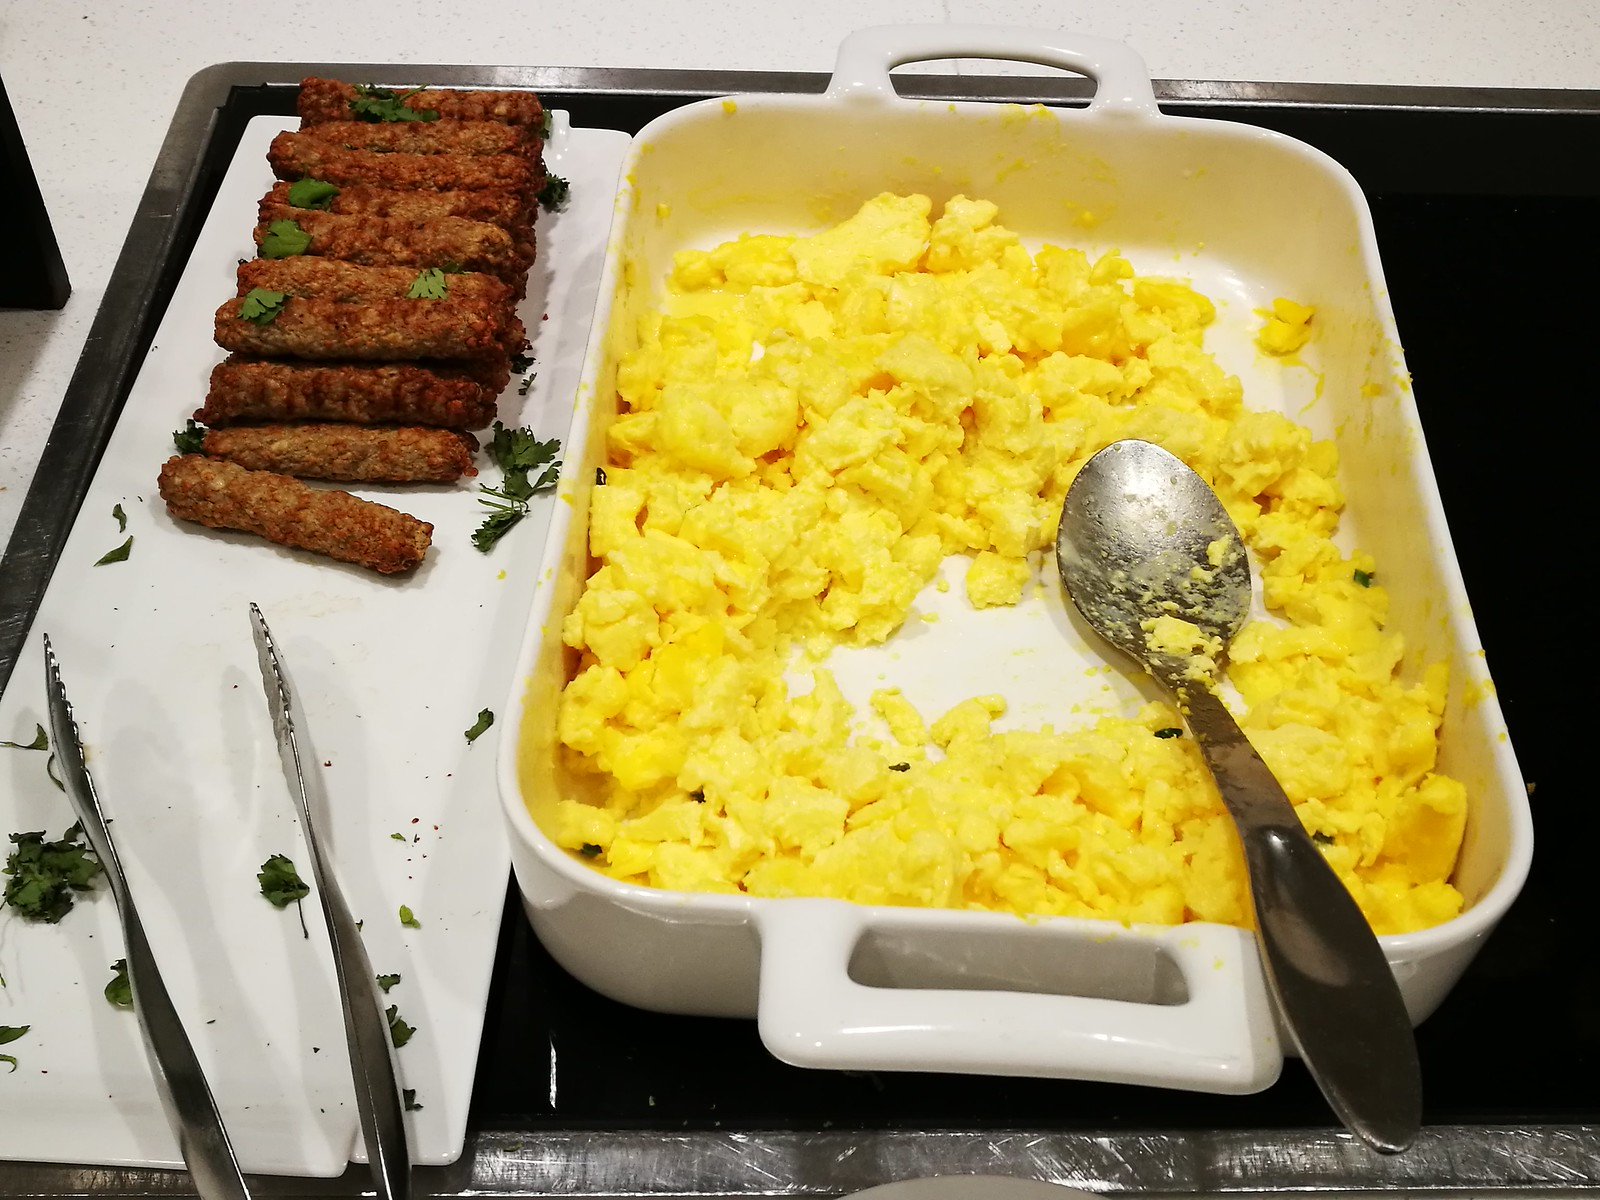 Scrambled egg and sausage